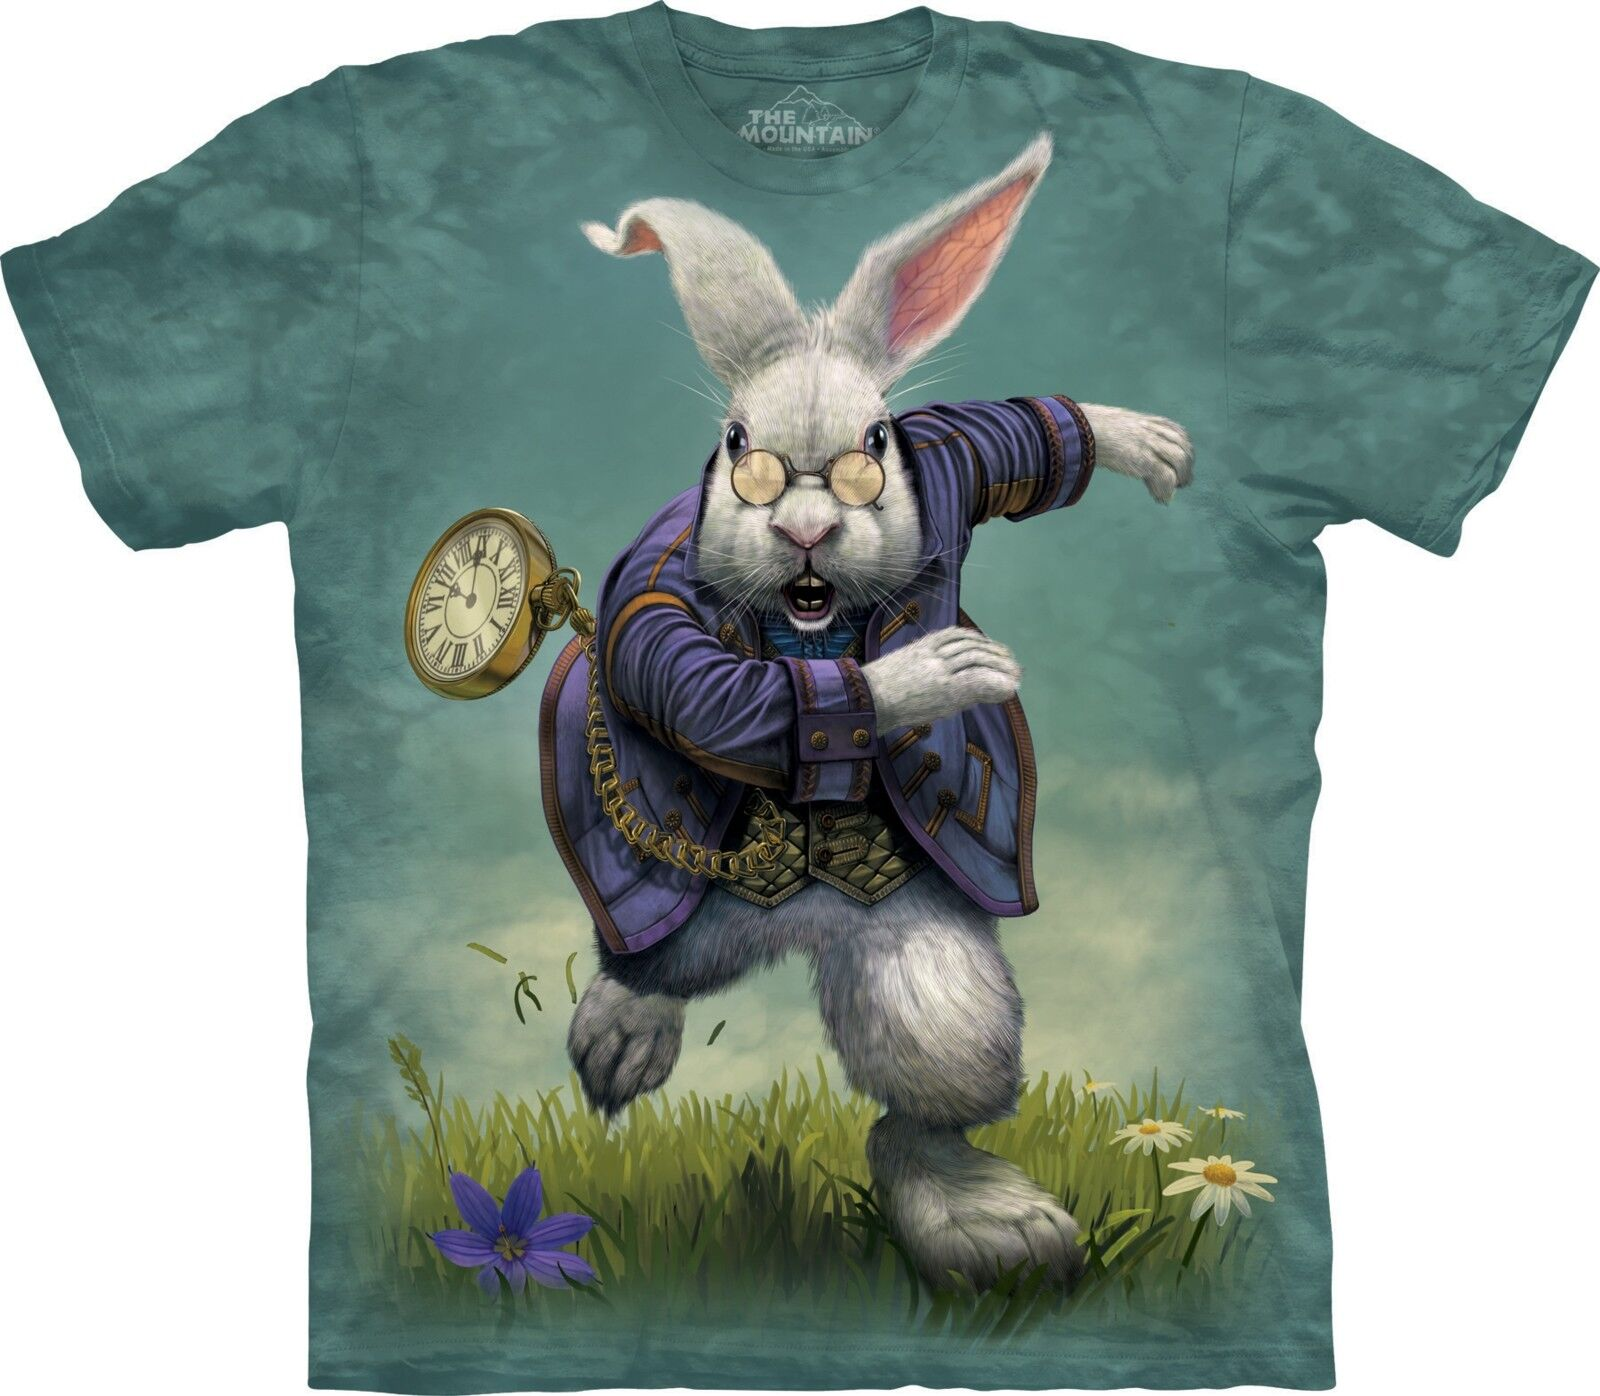 White Rabbit T Shirt Adult Unisex The Mountain